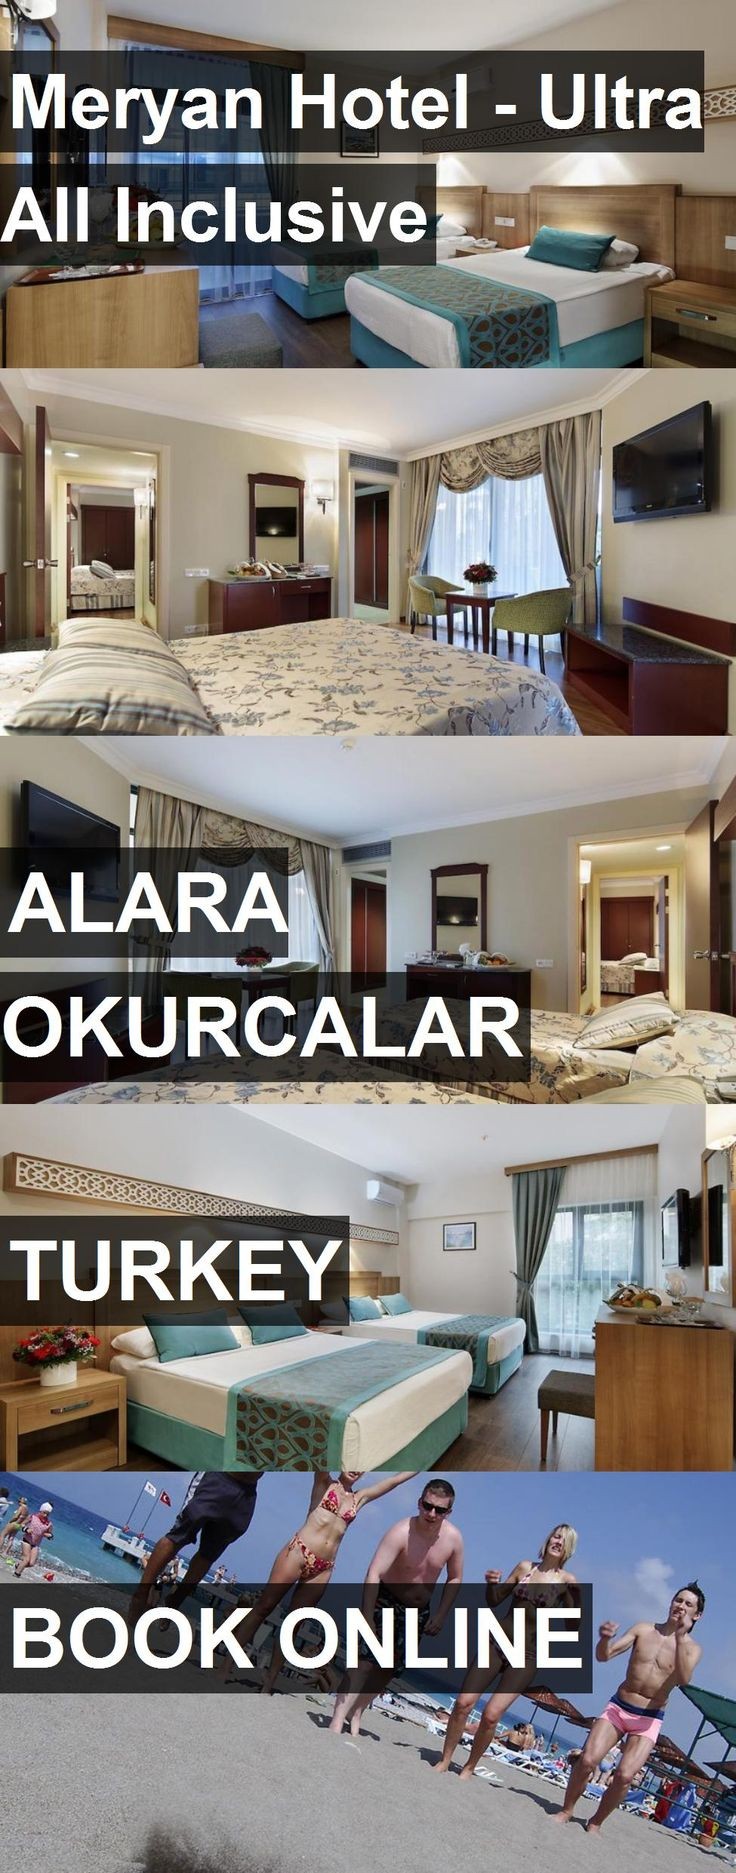 Meryan Hotel - Ultra All Inclusive in Alara Okurcalar, Turkey. For more information, photos, reviews and best prices please follow the link. #Turkey #AlaraOkurcalar #travel #vacation #hotel